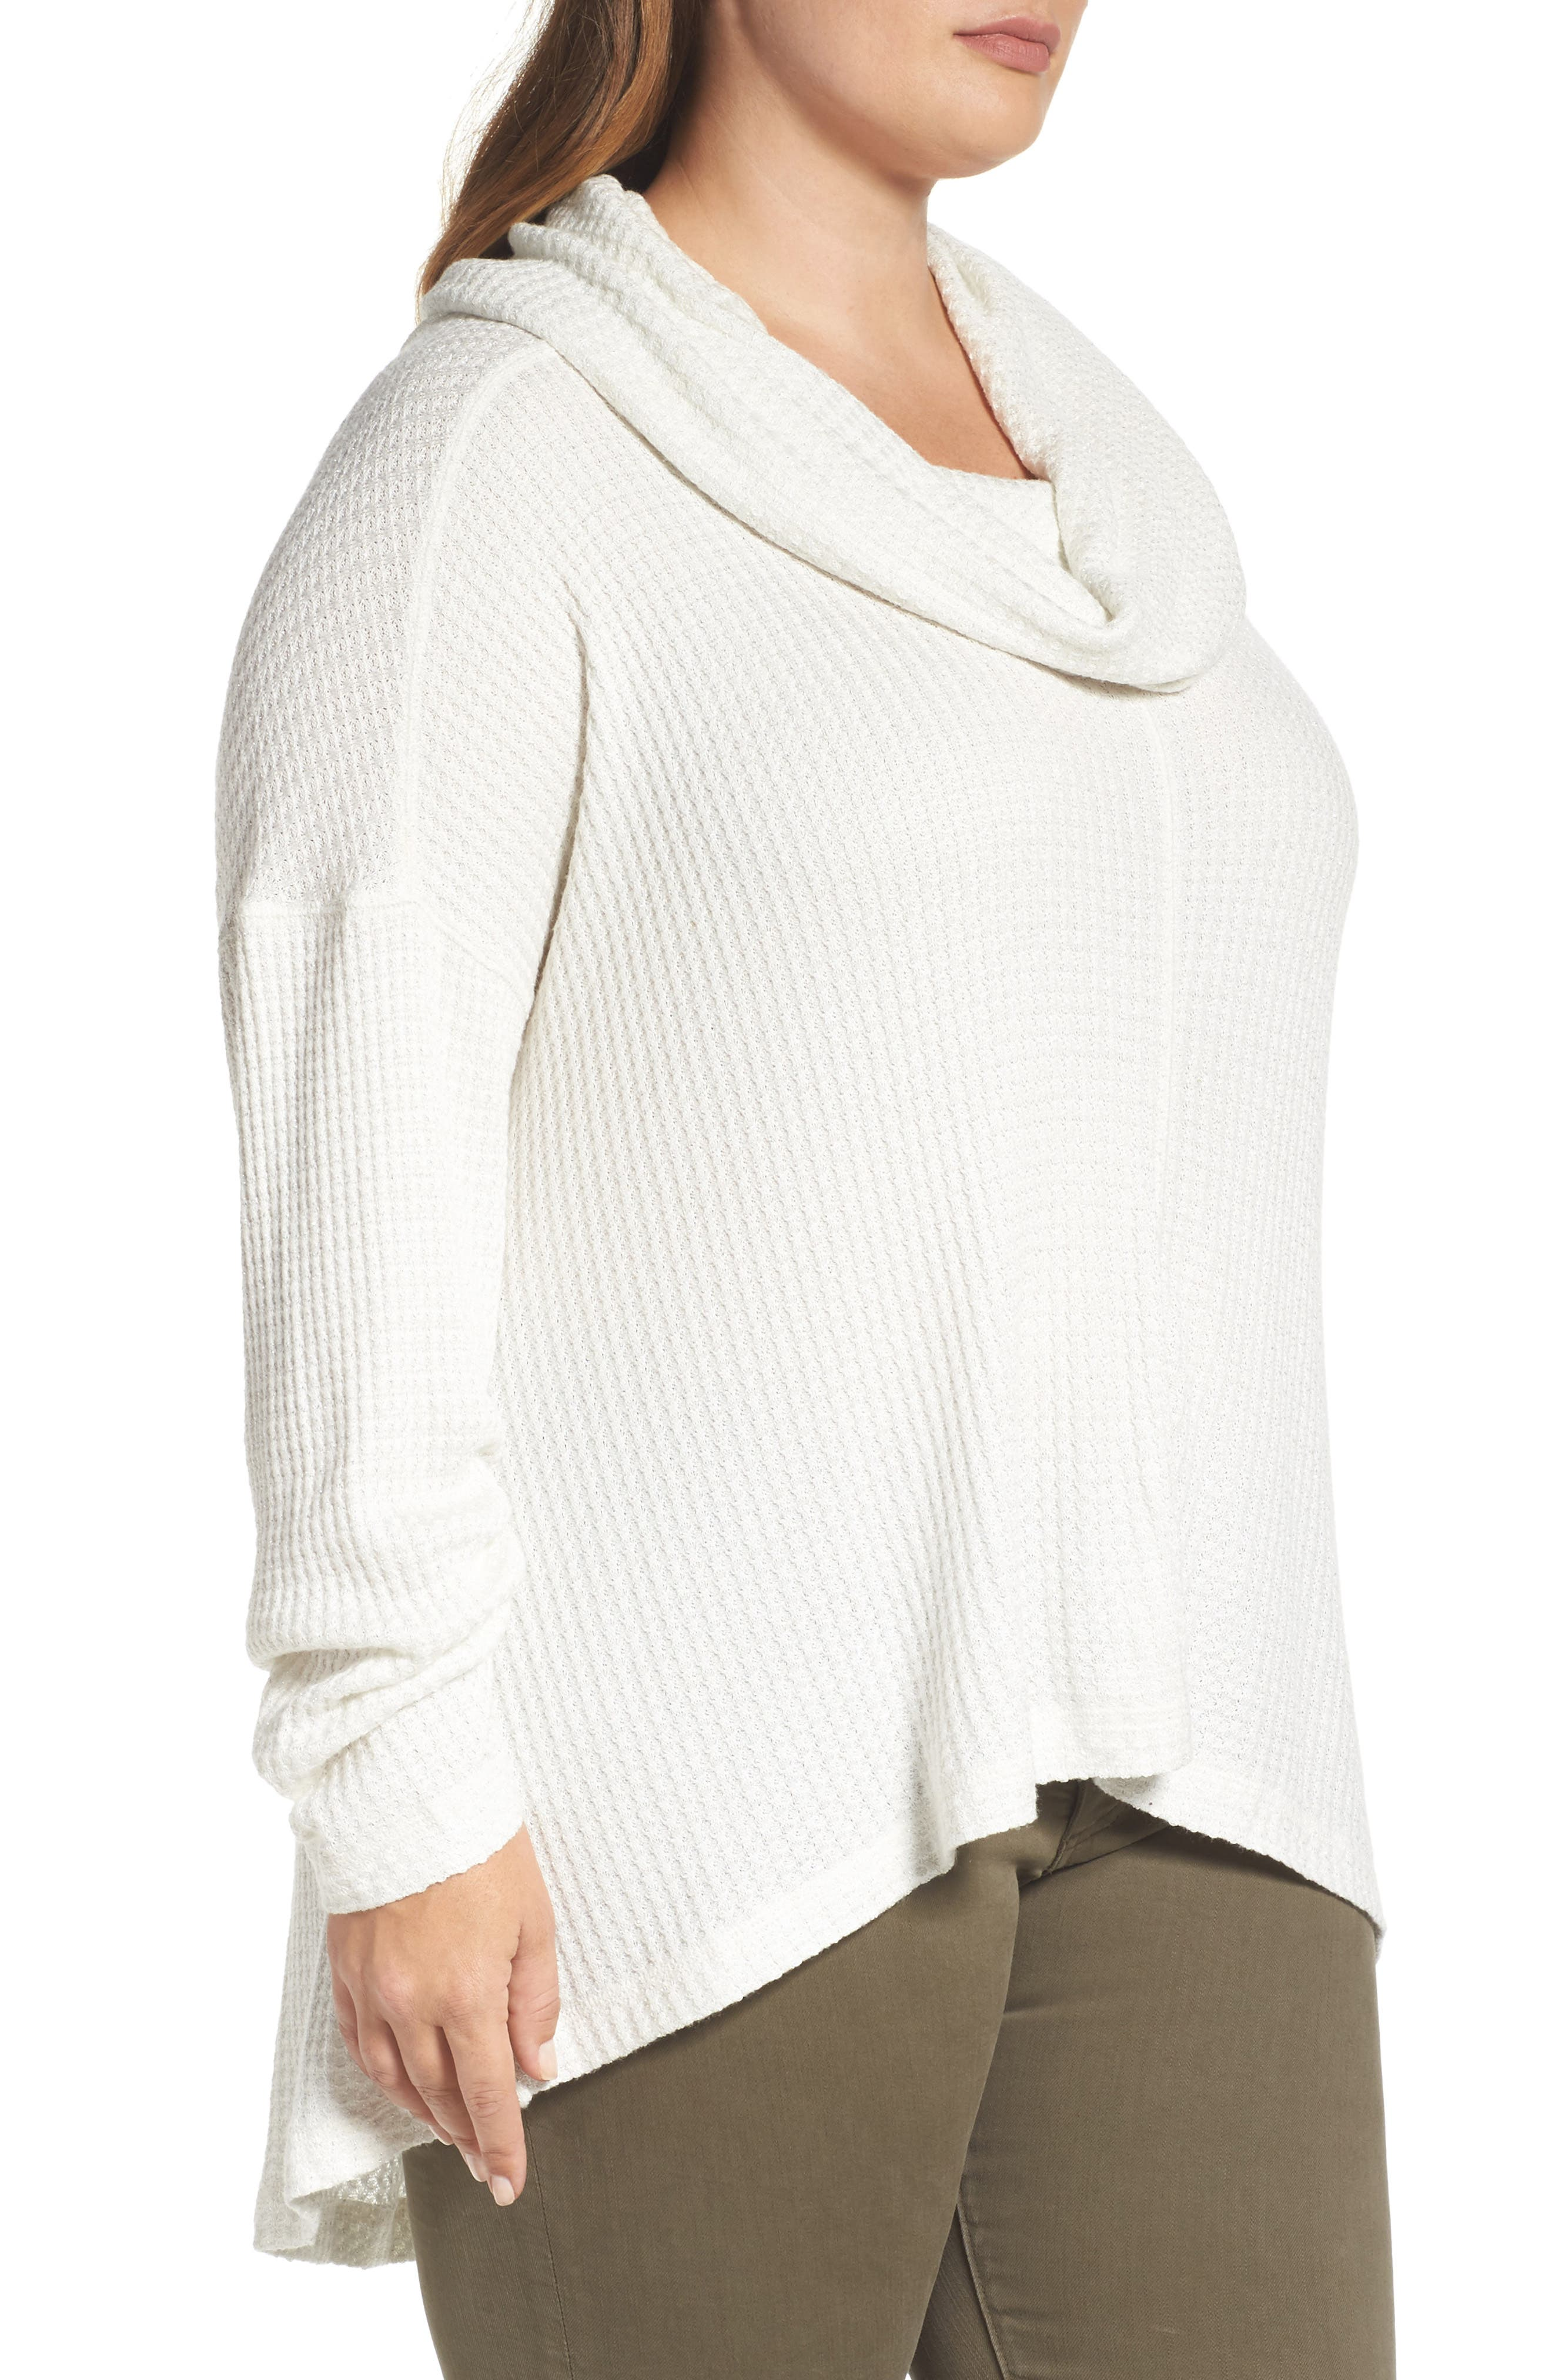 Cowl Neck Thermal Top,                             Alternate thumbnail 3, color,                             110